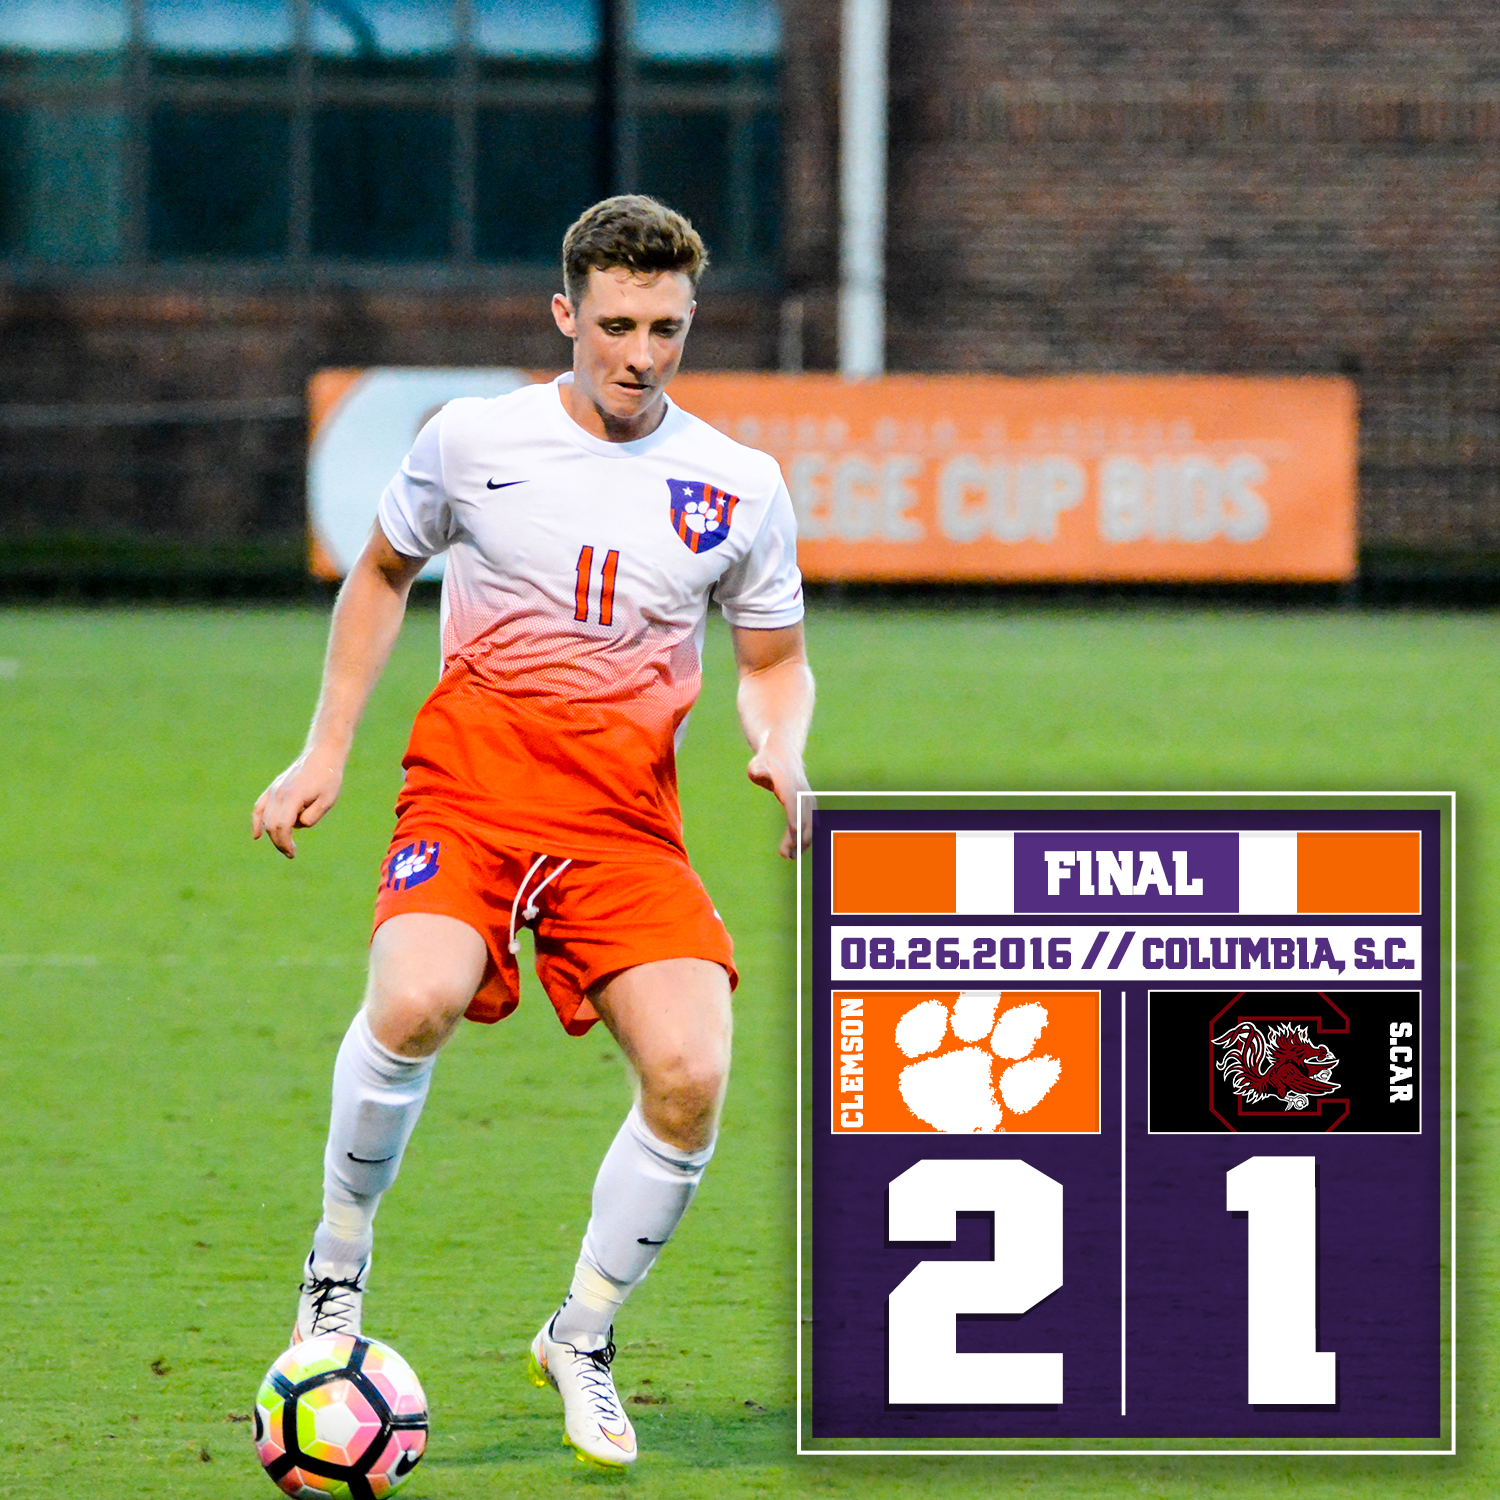 No. 3 Tigers Open Season With a 2-1 Victory Over No. 24 South Carolina in Columbia